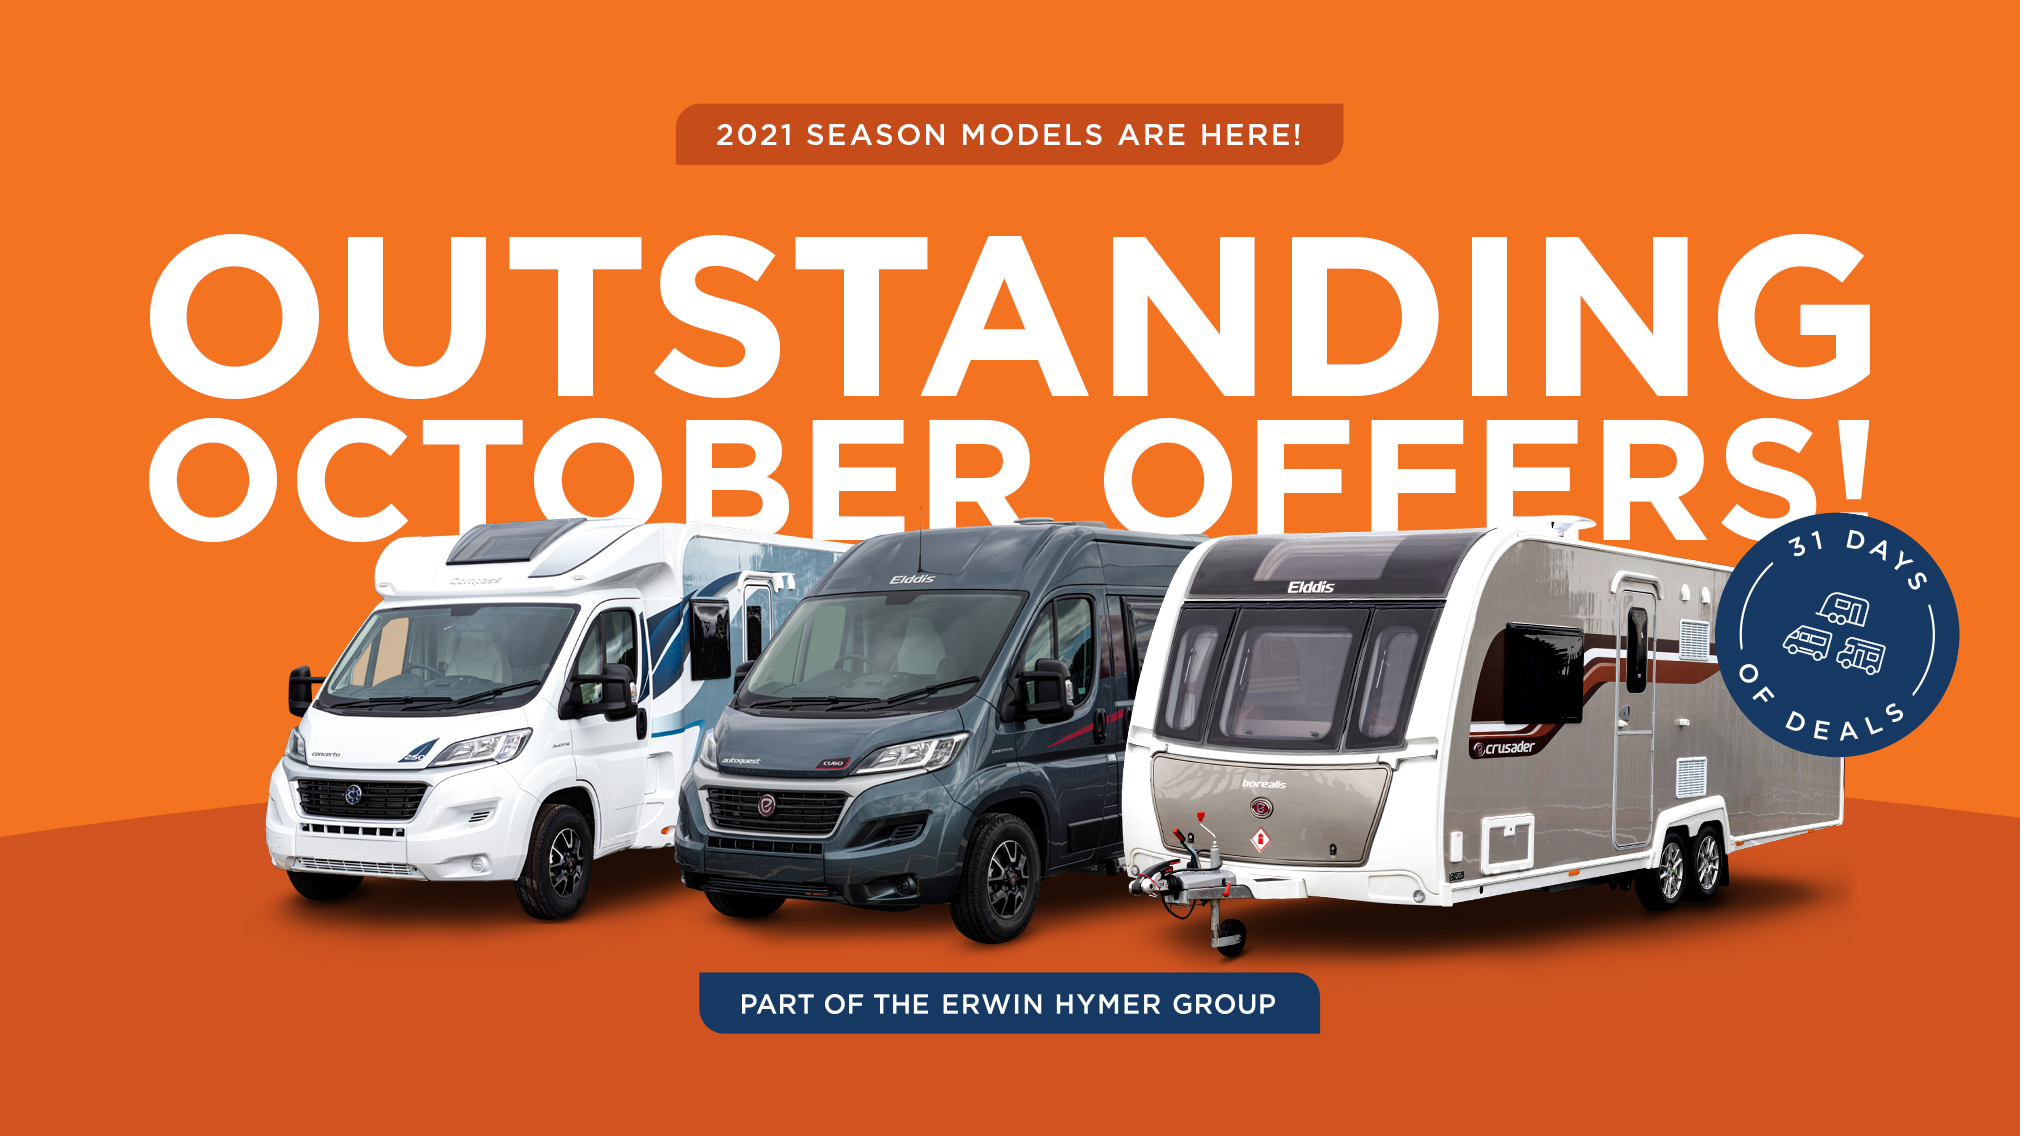 Erwin-Hymer-October-Deal-Event-Image